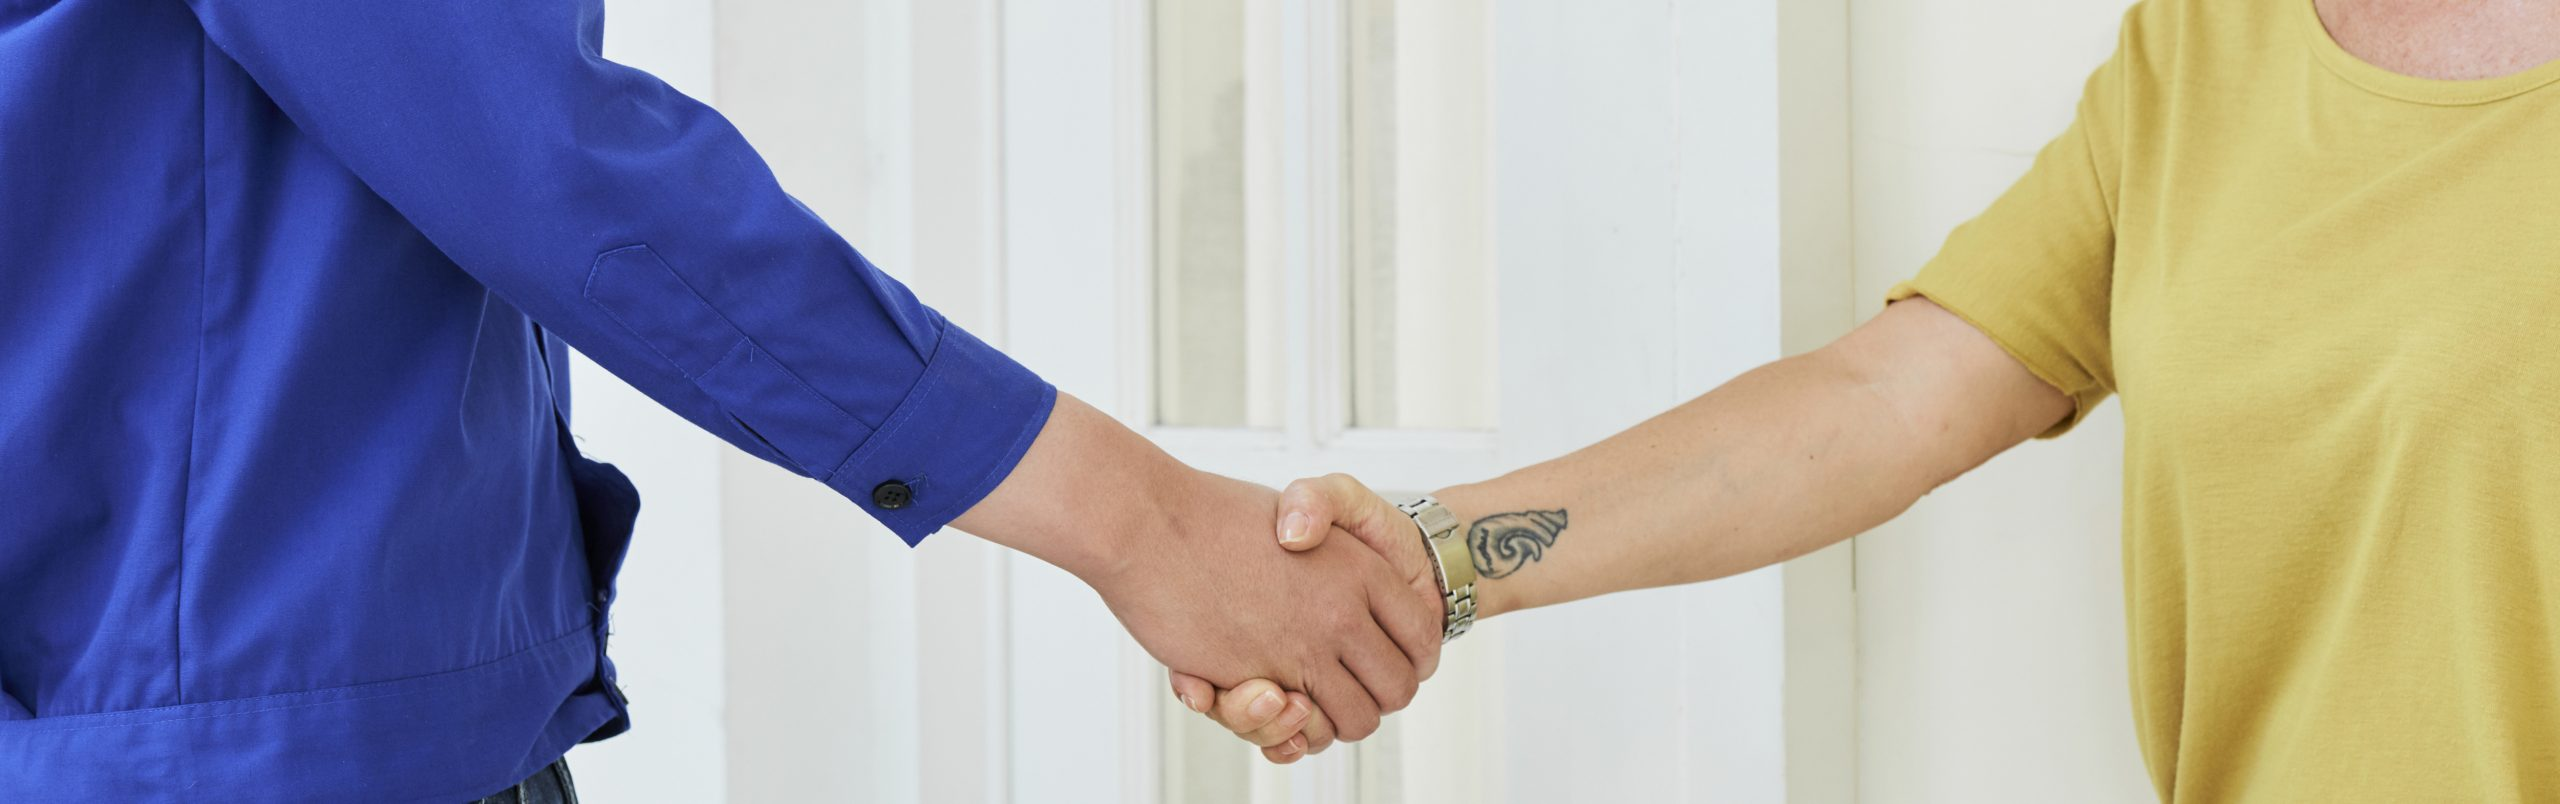 CustomerHandShake